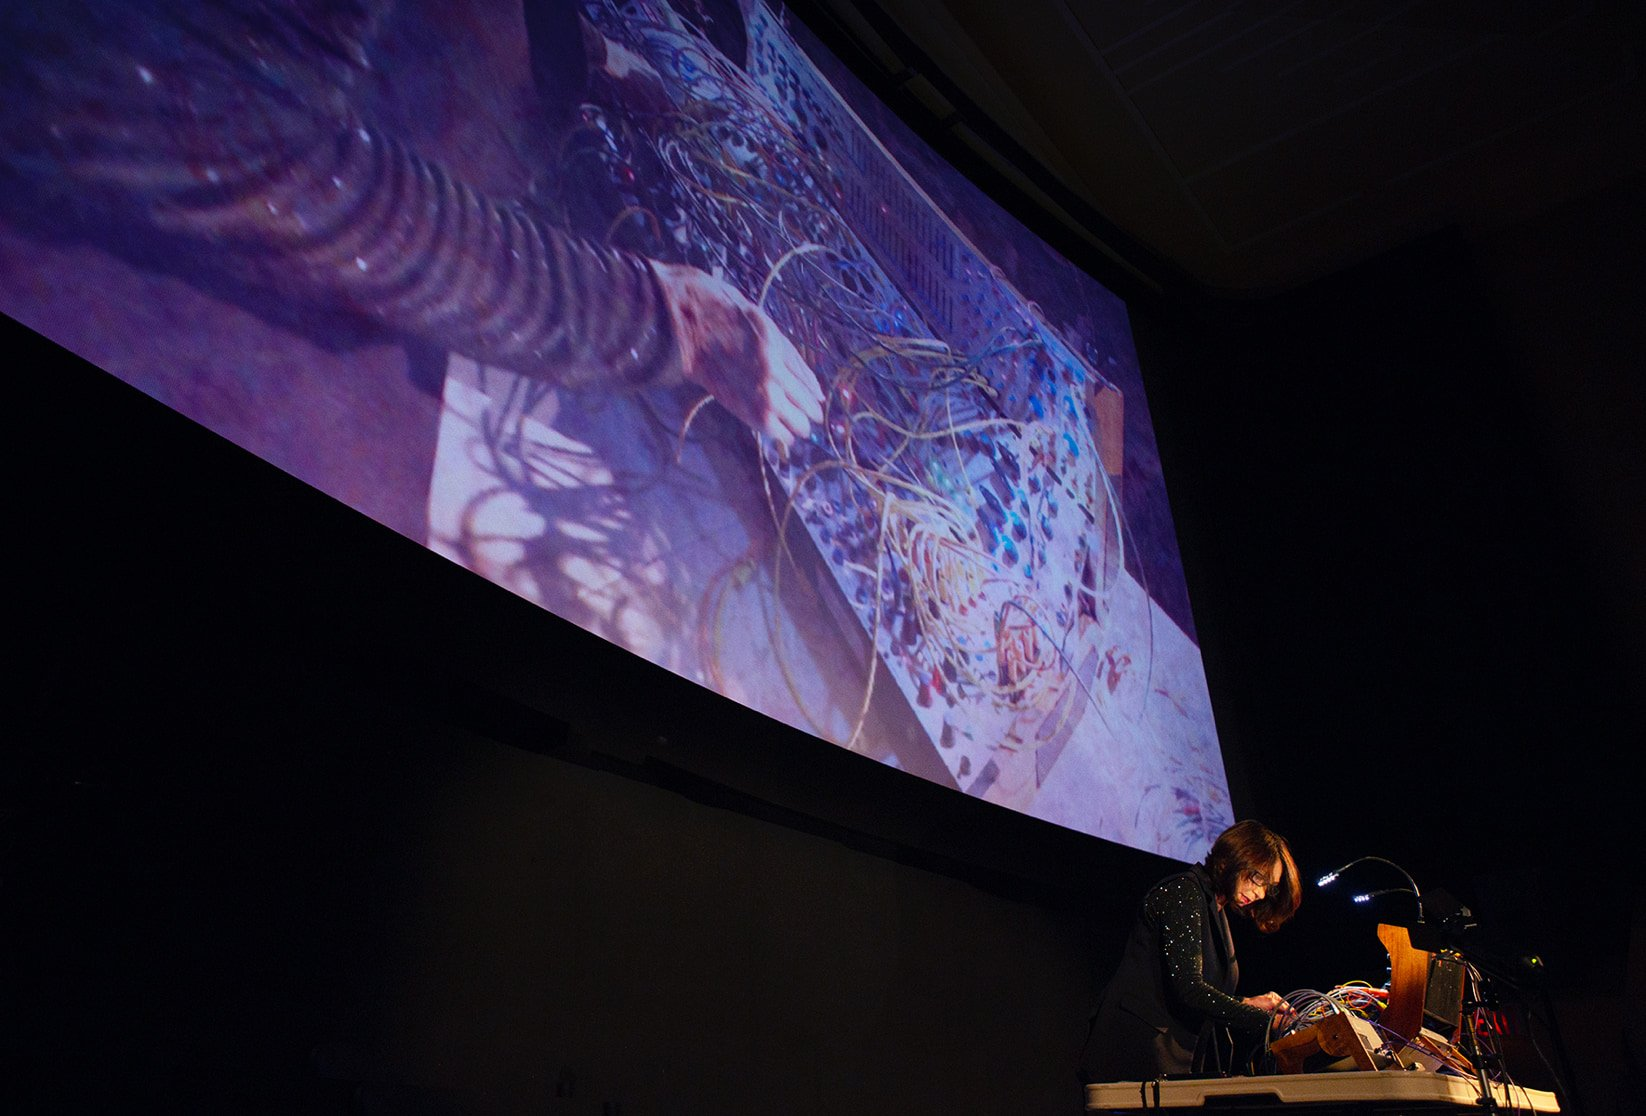 An instrumentalist plays a synthesizer; her instrument is projected on a wide screen behind her.